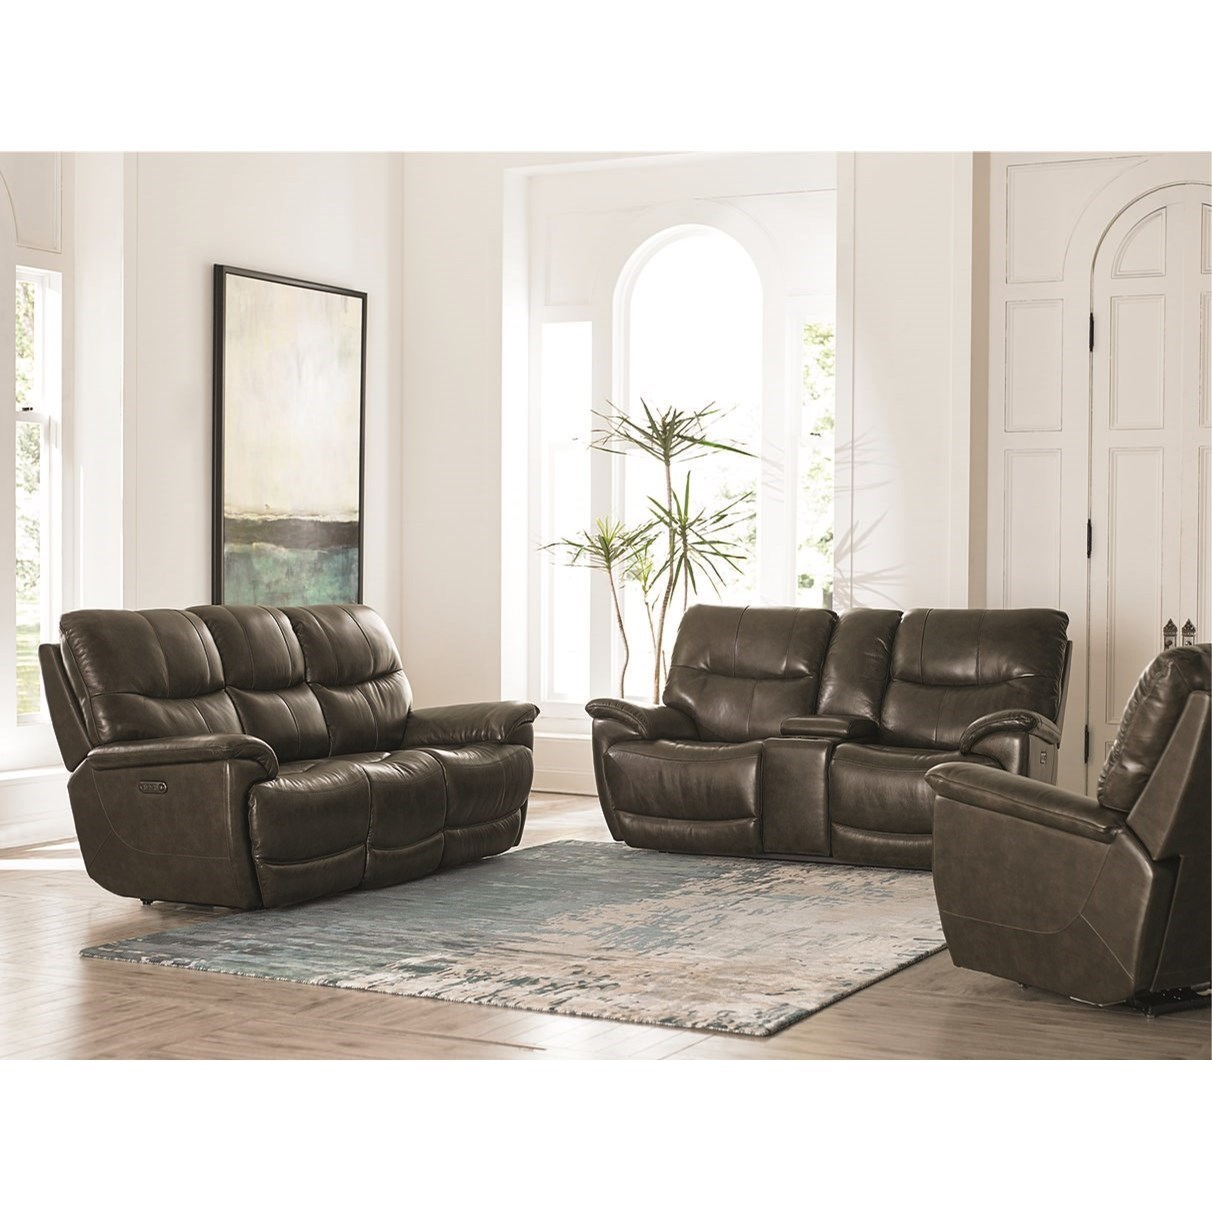 Bassett Brookville 3713 P62t Casual Power Reclining Sofa With Power Headrests And Usb Port Dean Bosler S Reclining Sofas